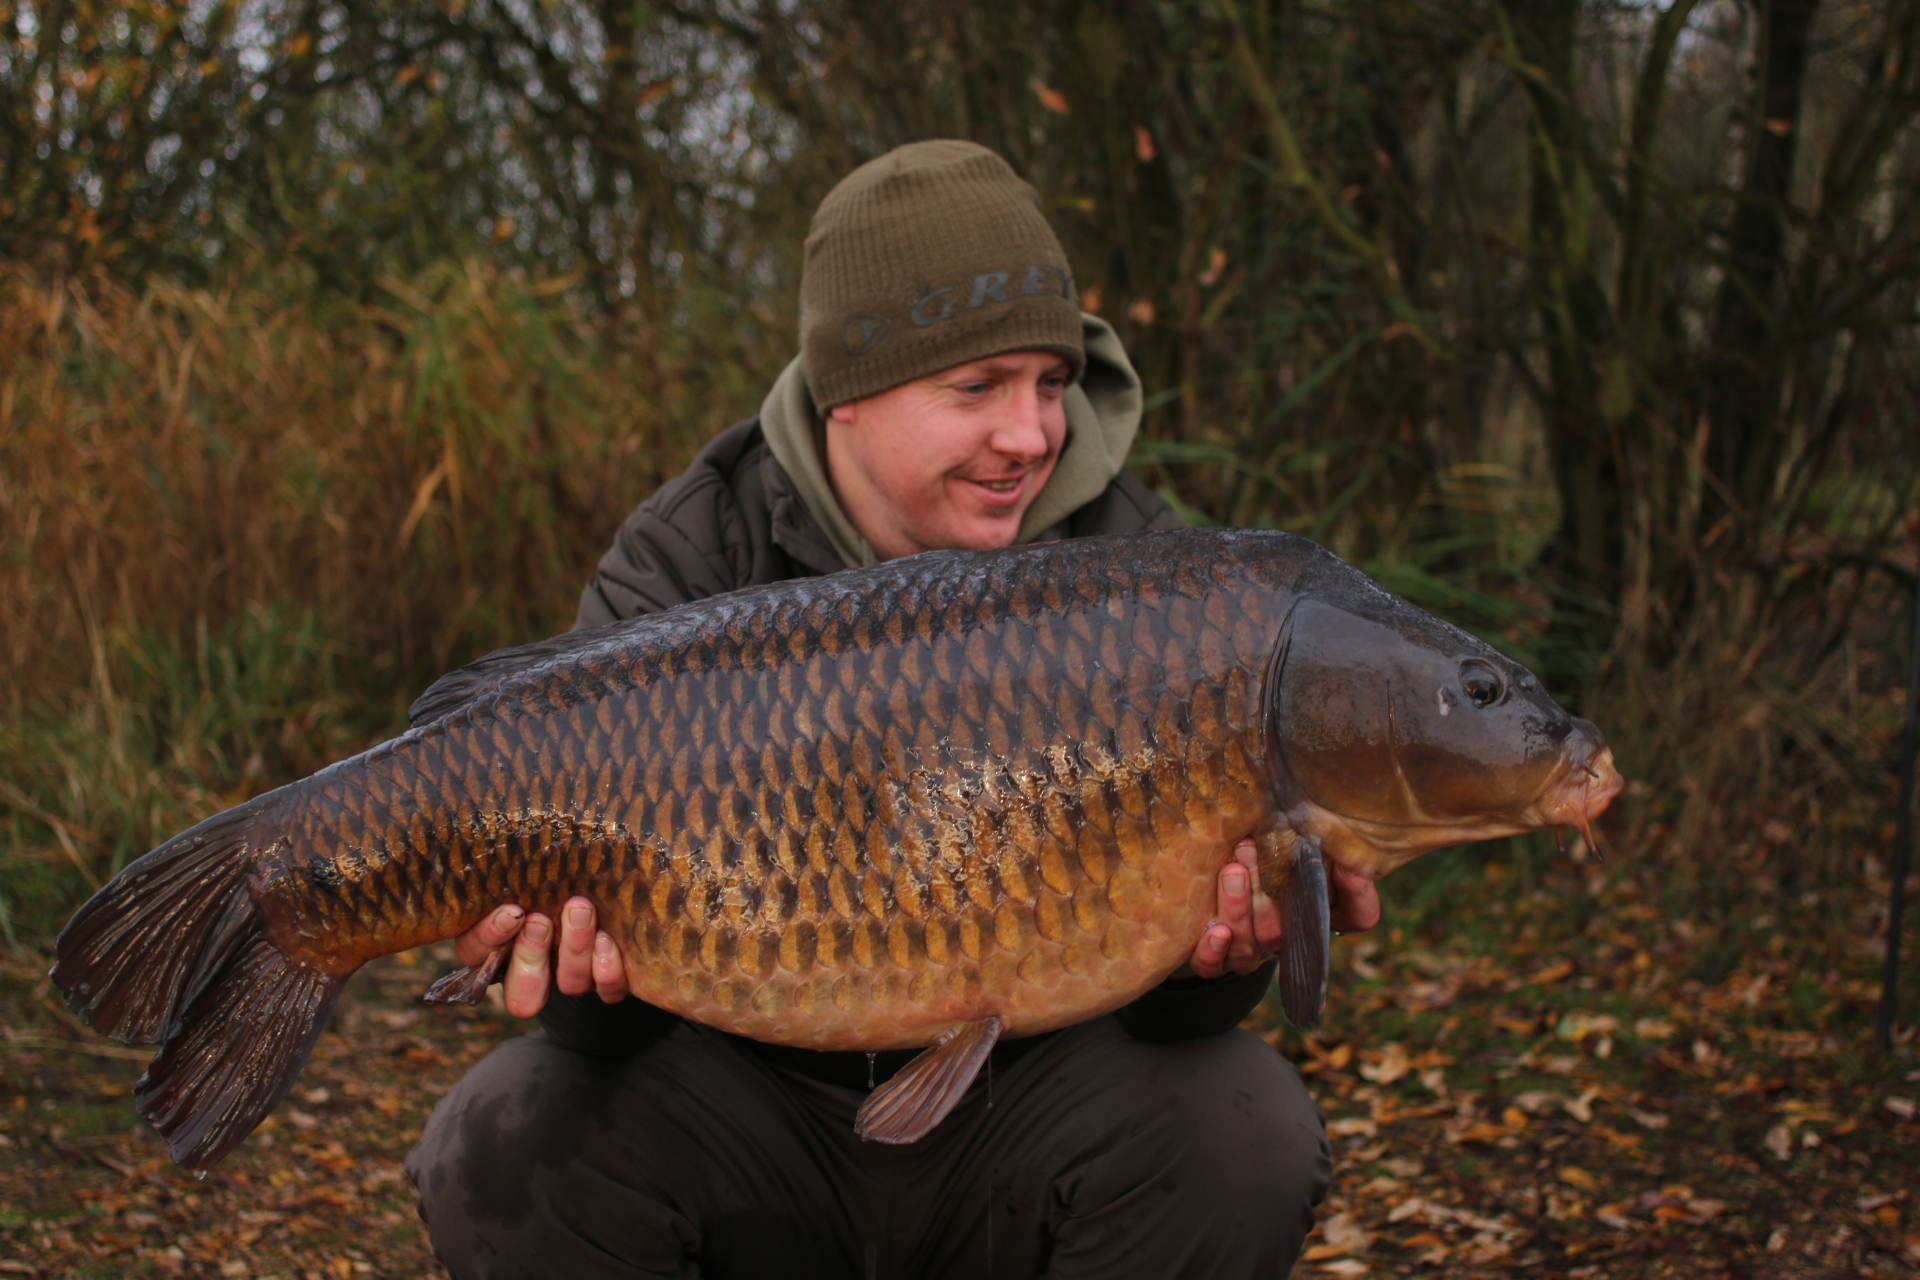 Winter Carp Fishing Tips With Ed Betteridge